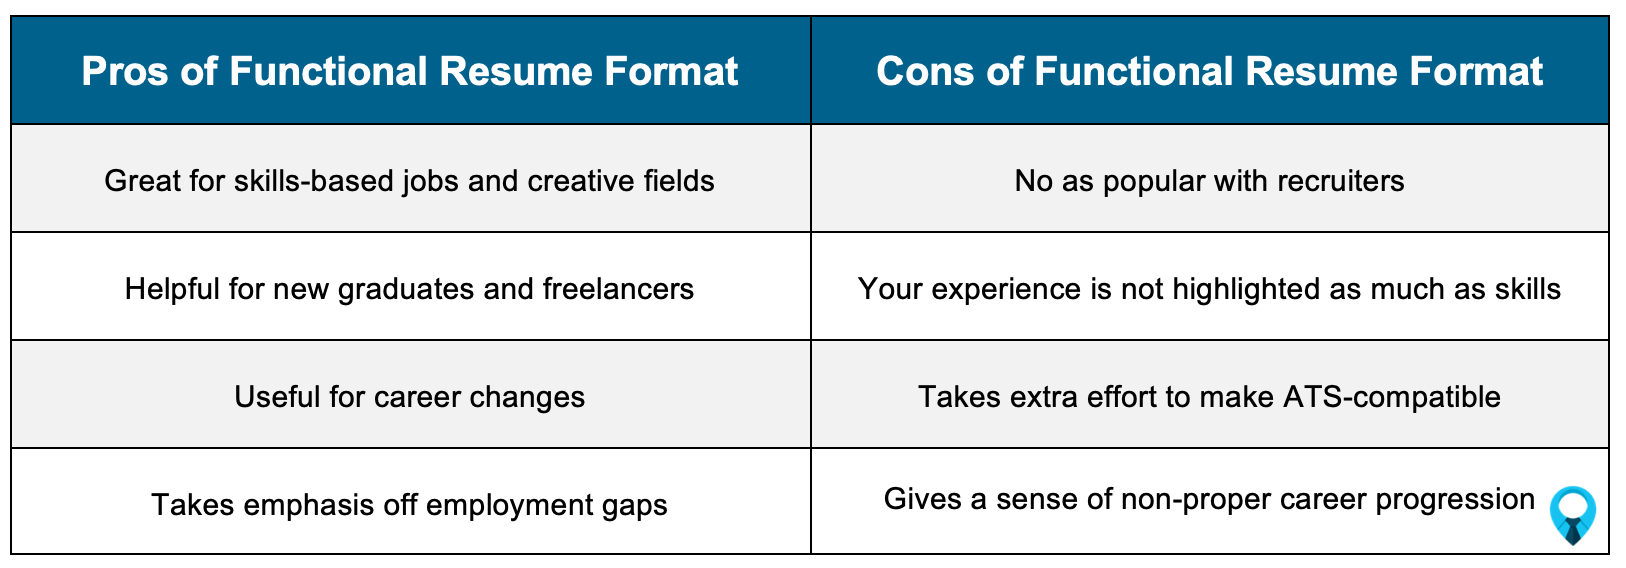 Pros and Cons of Functional Resume